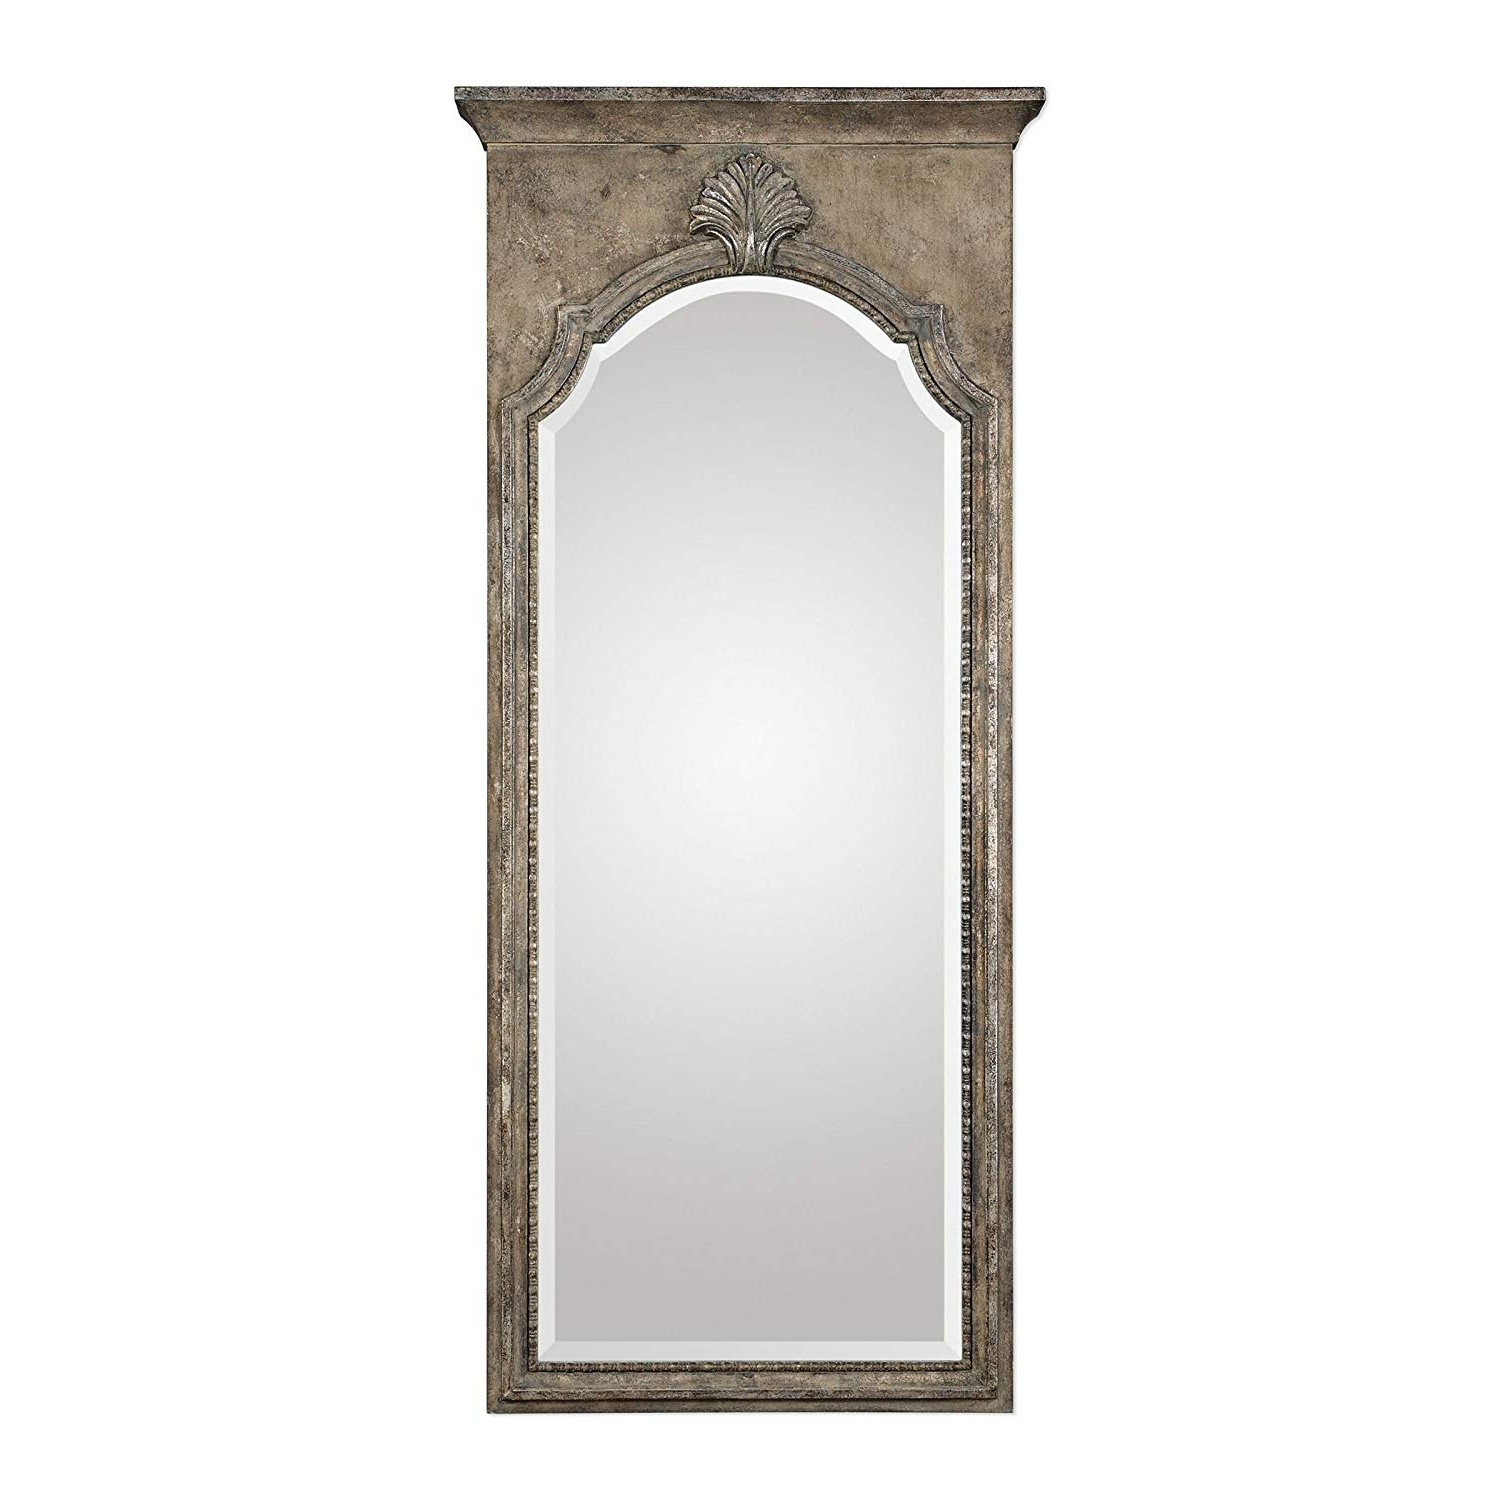 "Amazon: My Swanky Home Solid Wood 73"" Full Length Wall Mirror With Regard To Trendy Rectangle Ornate Geometric Wall Mirrors (View 14 of 20)"